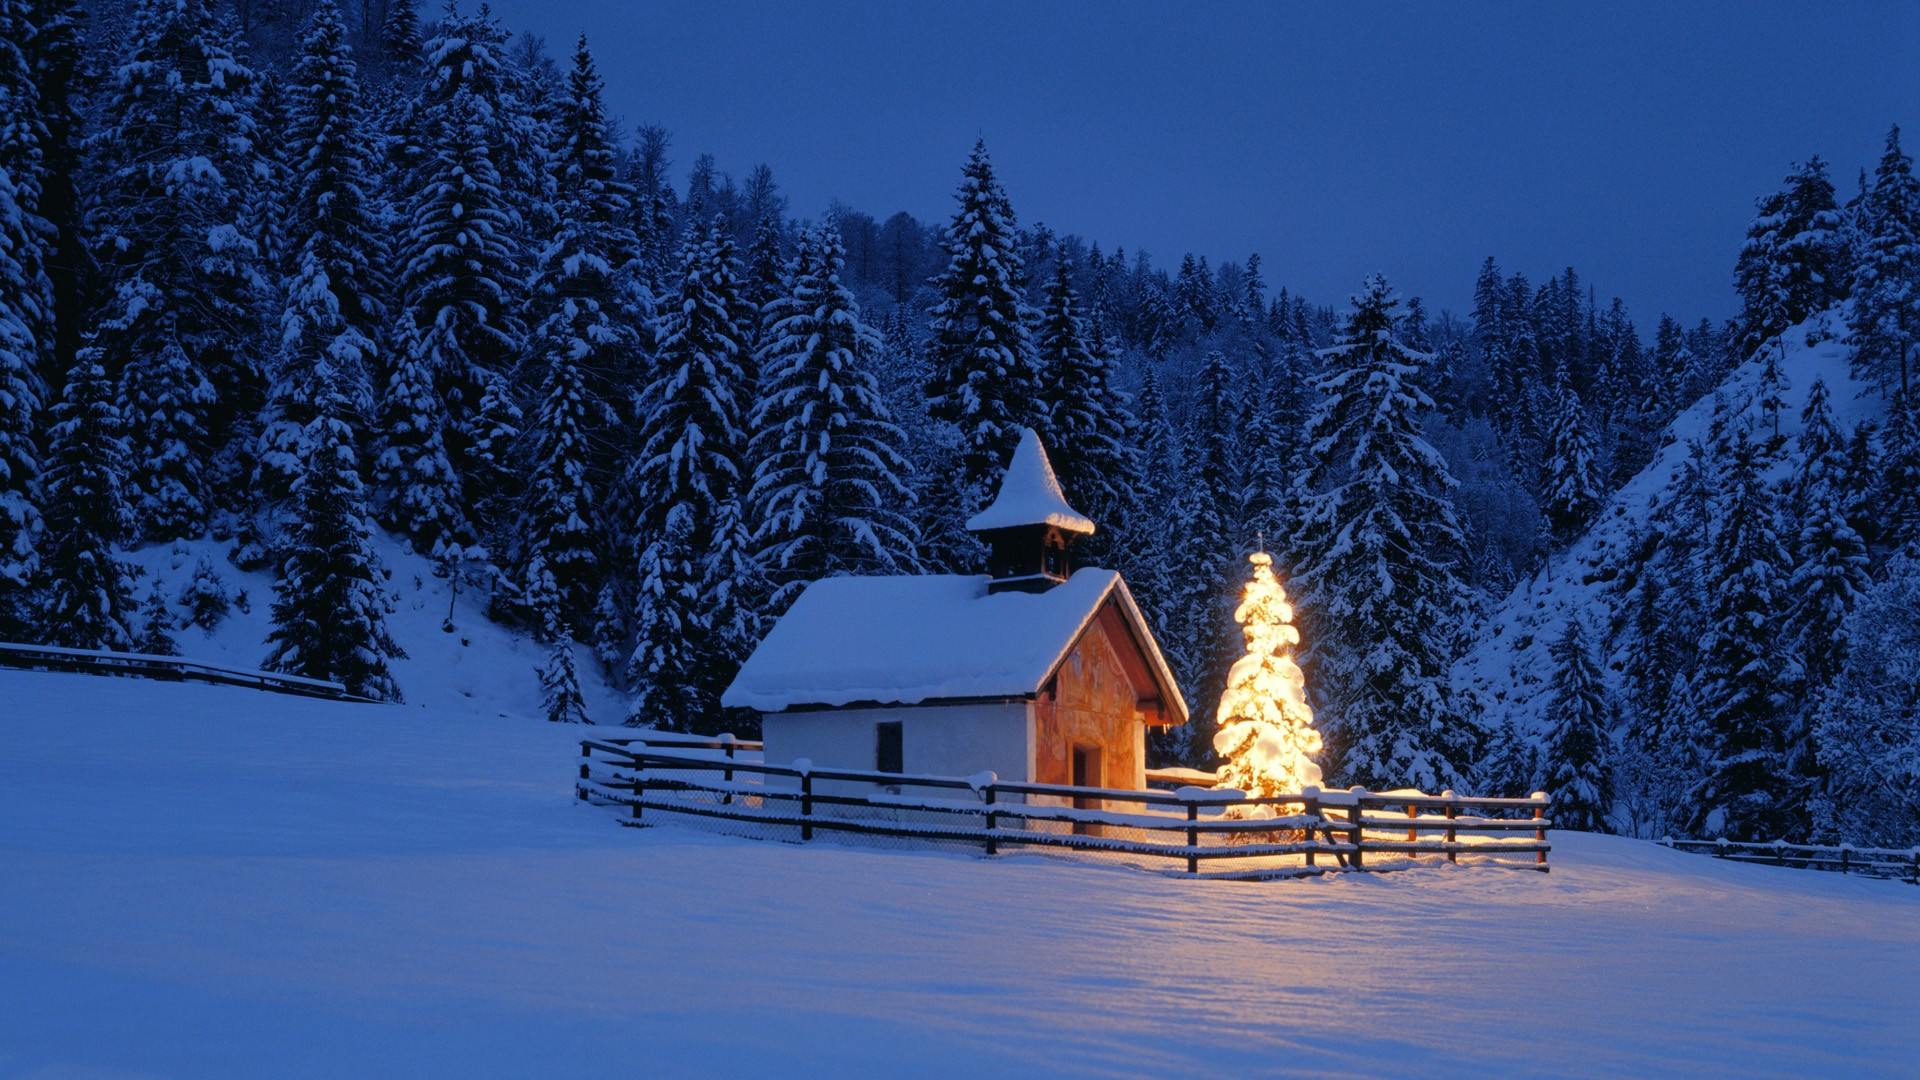 which is under the winter wallpapers category of hd wallpapers 1920x1080